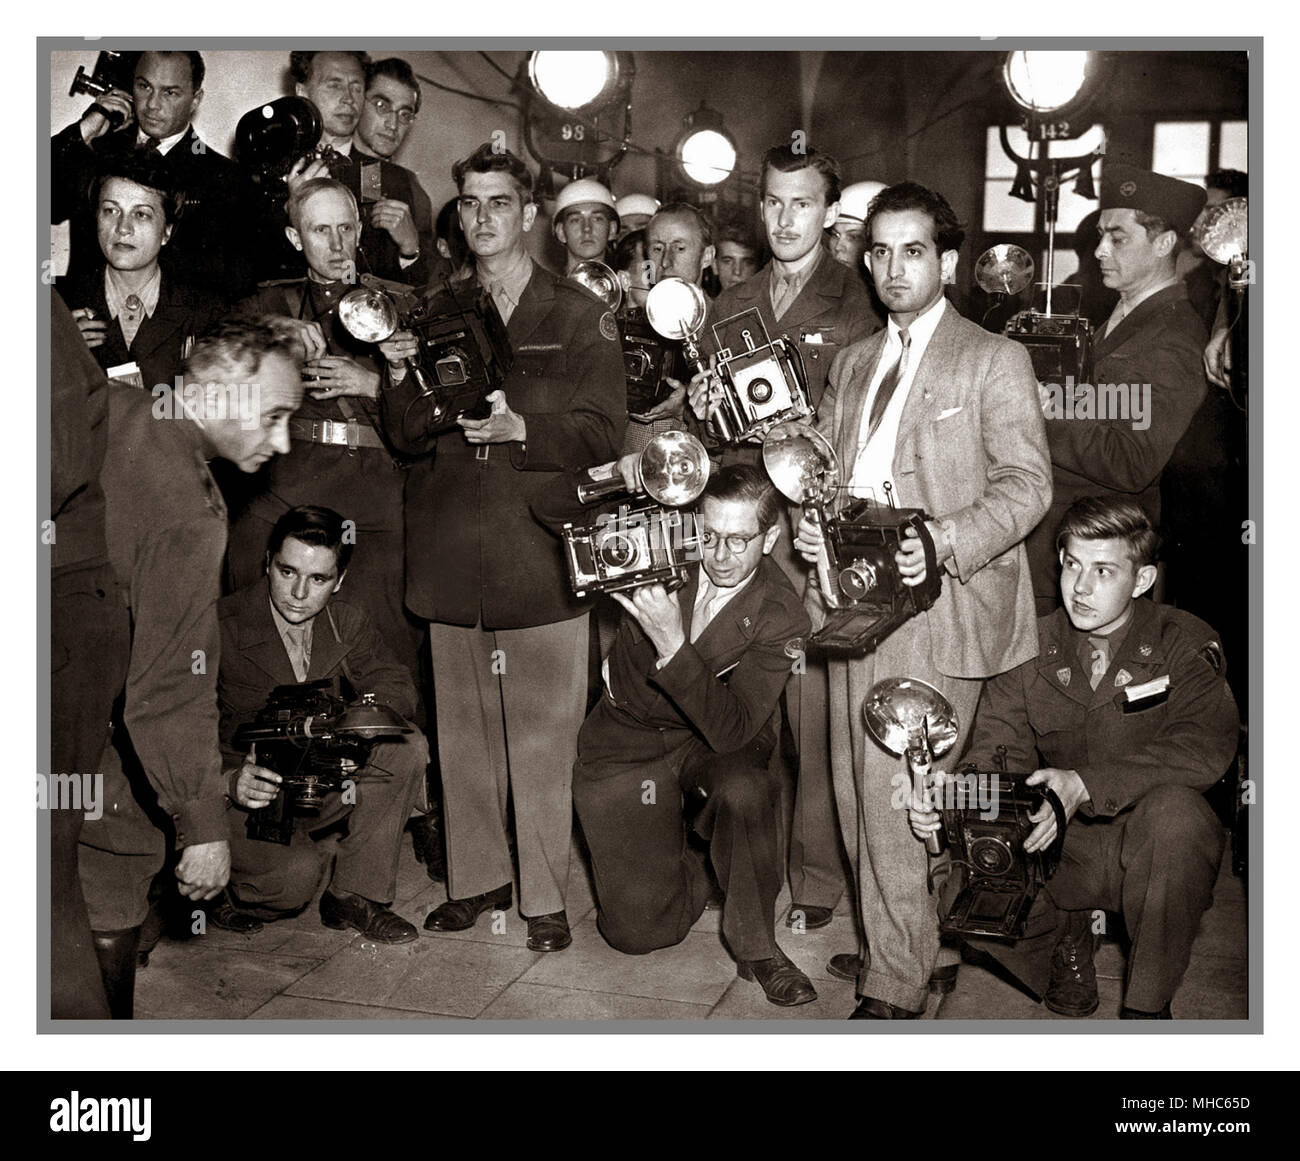 Photo-Journalists waiting for high ranking Nazis to exit the Nuremberg Trials court room.  Held for the purpose of bringing Nazi war criminals to justice, the Nuremberg trials were a series of 13 trials carried out in Nuremberg, Germany, between 1945 and 1949. The defendants, who included Nazi Party officials and high-ranking military officers along with German industrialists, lawyers and doctors, were indicted on such charges as crimes against peace and crimes against humanity, the most serious of which attracted a sentence of death by hanging... - Stock Image